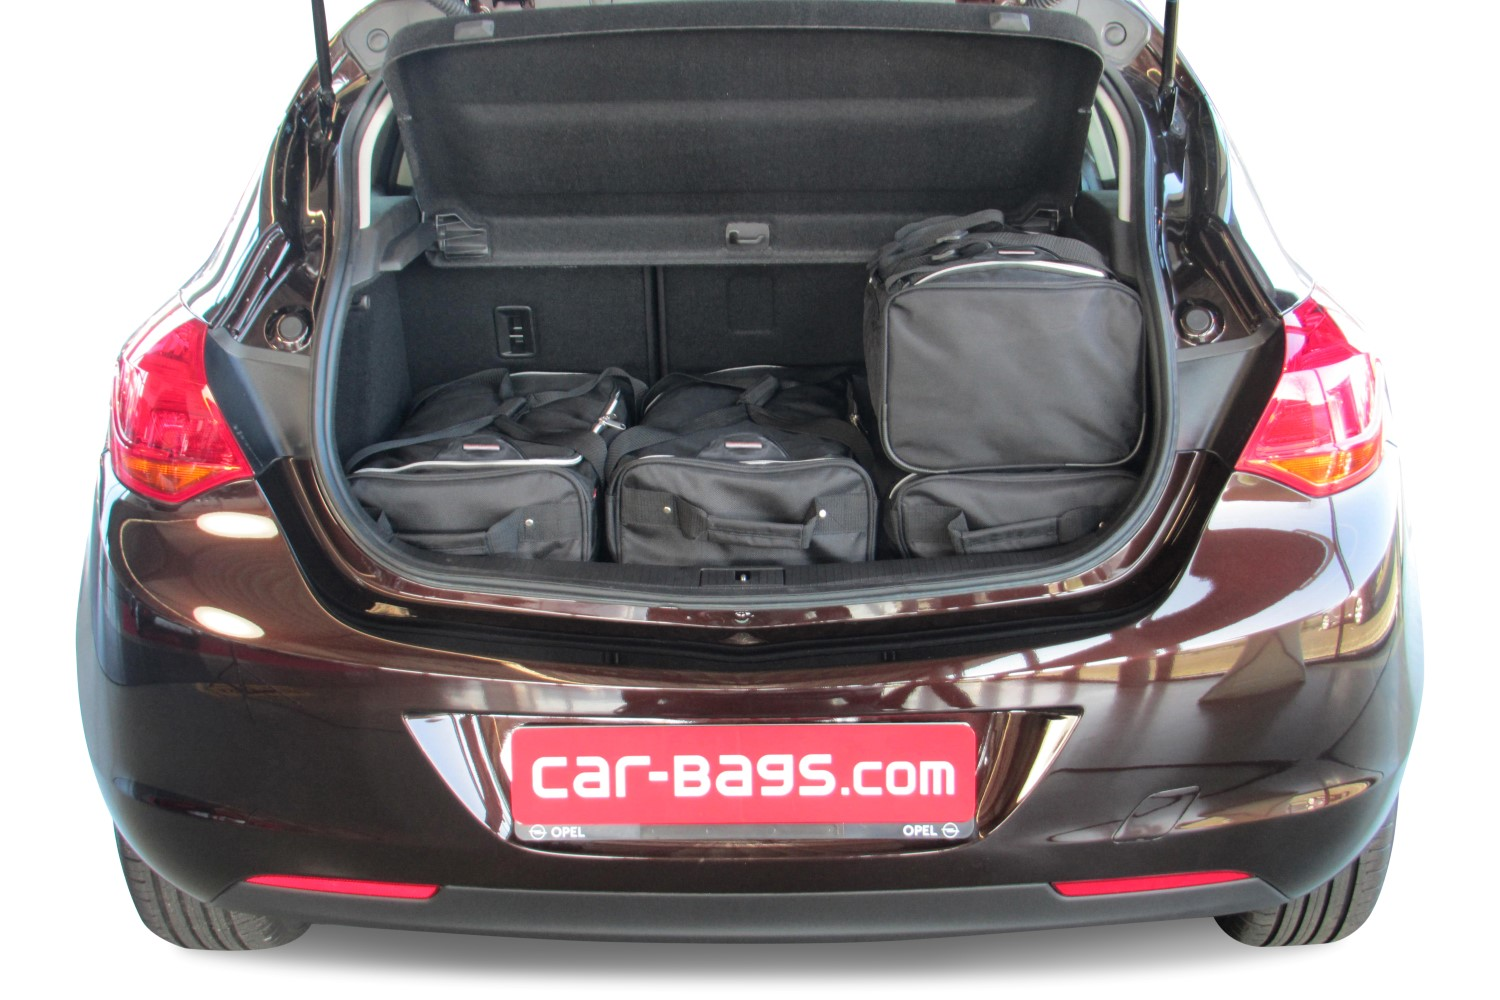 astra j 2009 2015 opel astra j 2009 2015 5d car bags travel bags. Black Bedroom Furniture Sets. Home Design Ideas